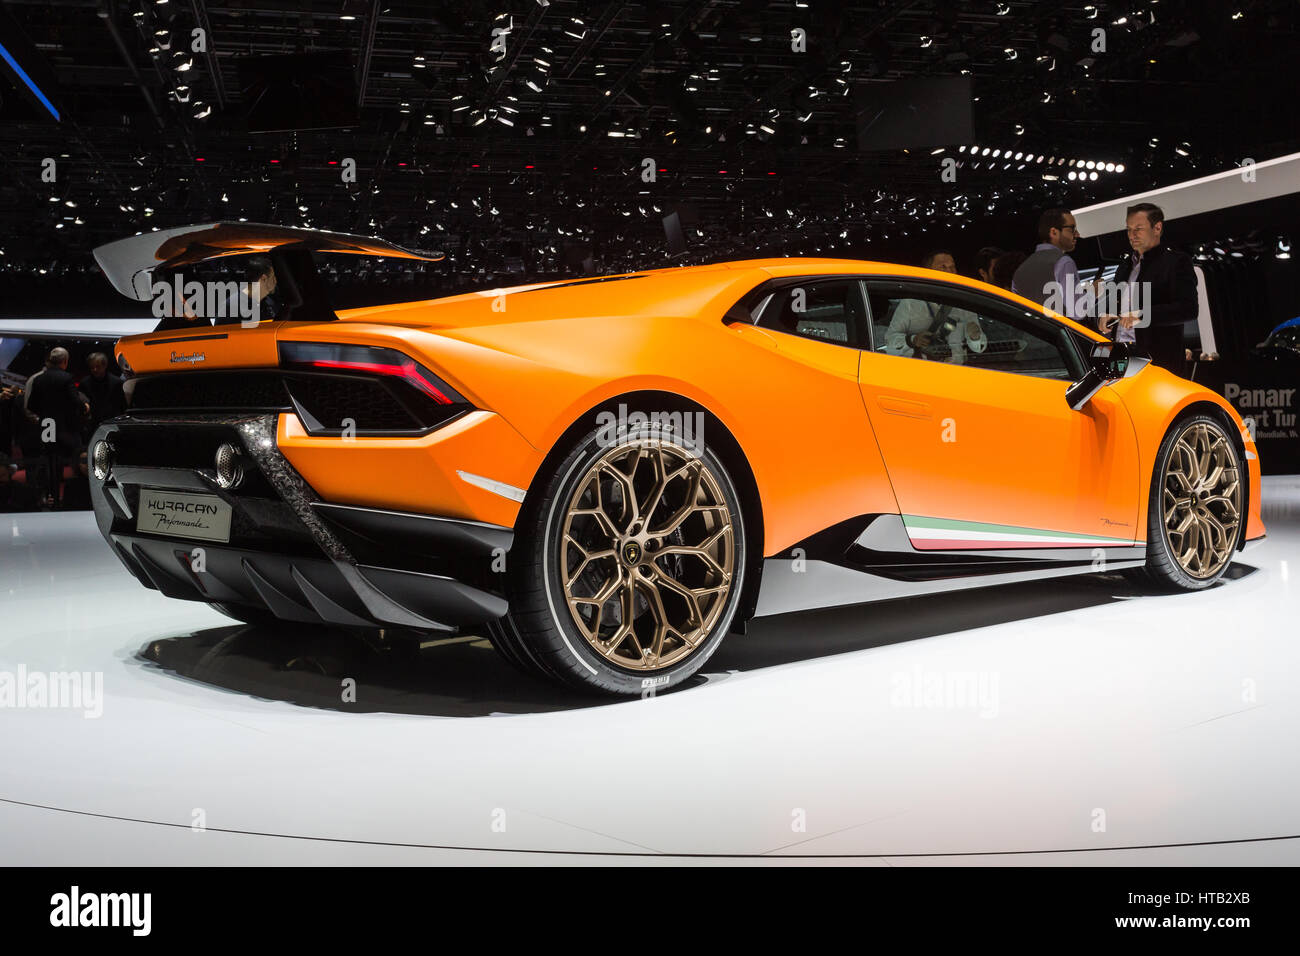 The Lamborghini Huracan Perfomante At The 87th 2017 Geneva International  Motor Show In Palexpo, Switzerland